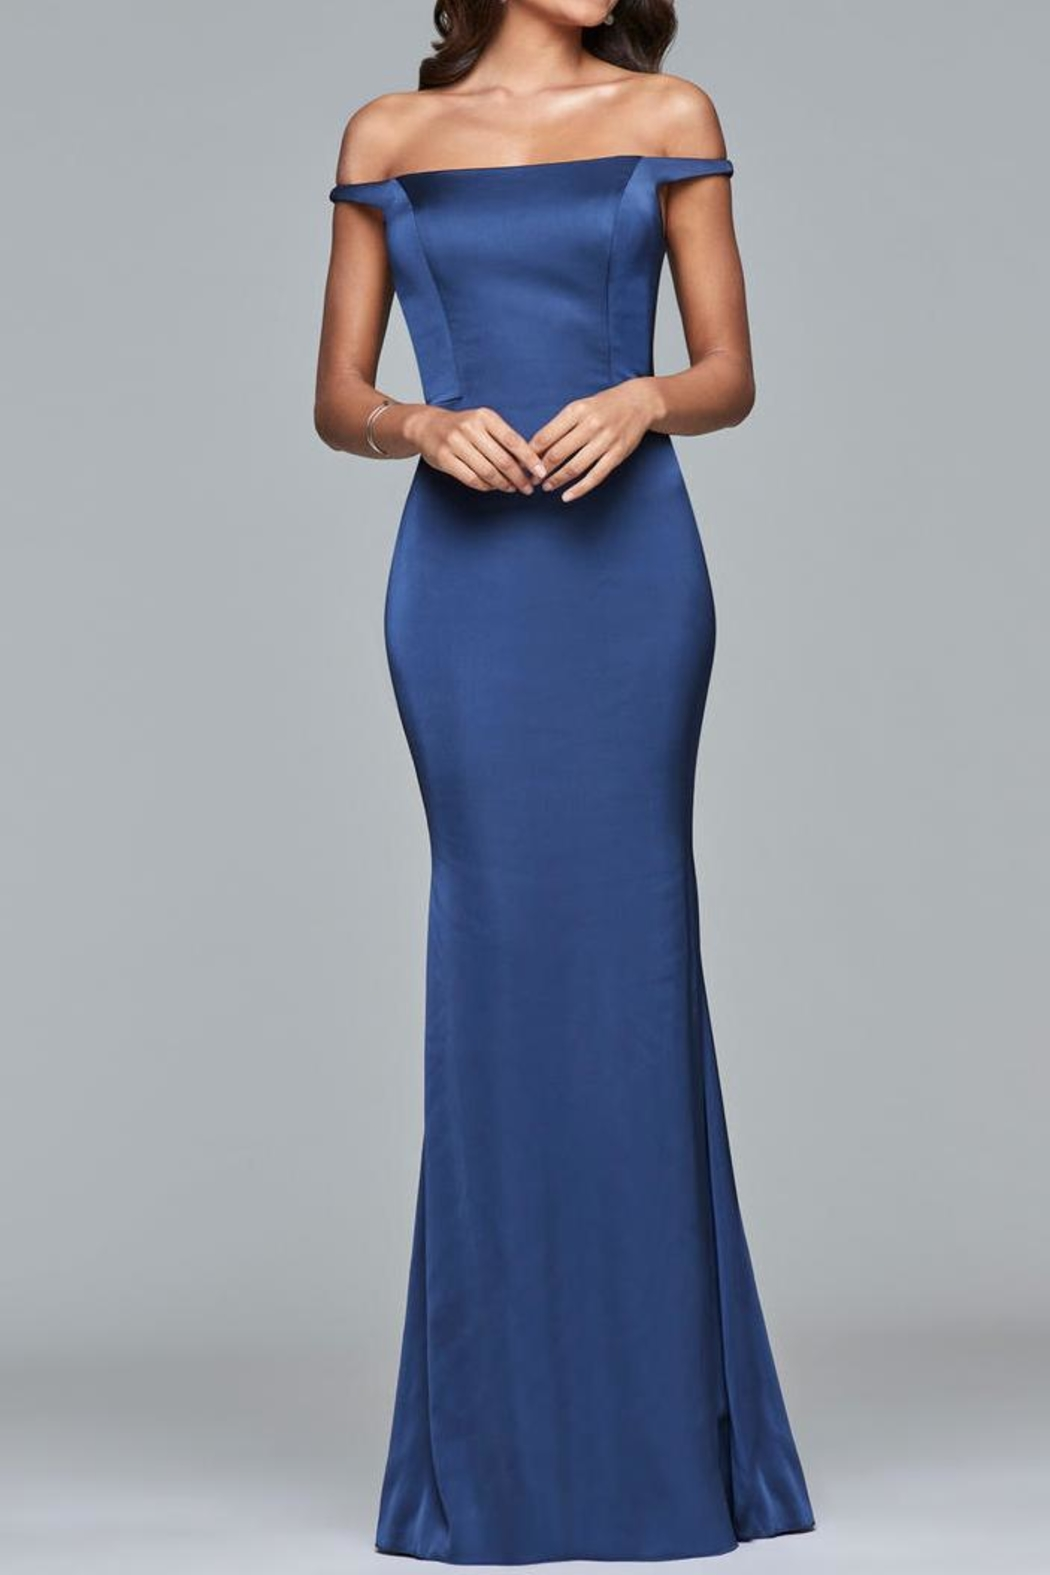 Faviana Simple Off-Shoulder Gown - Main Image